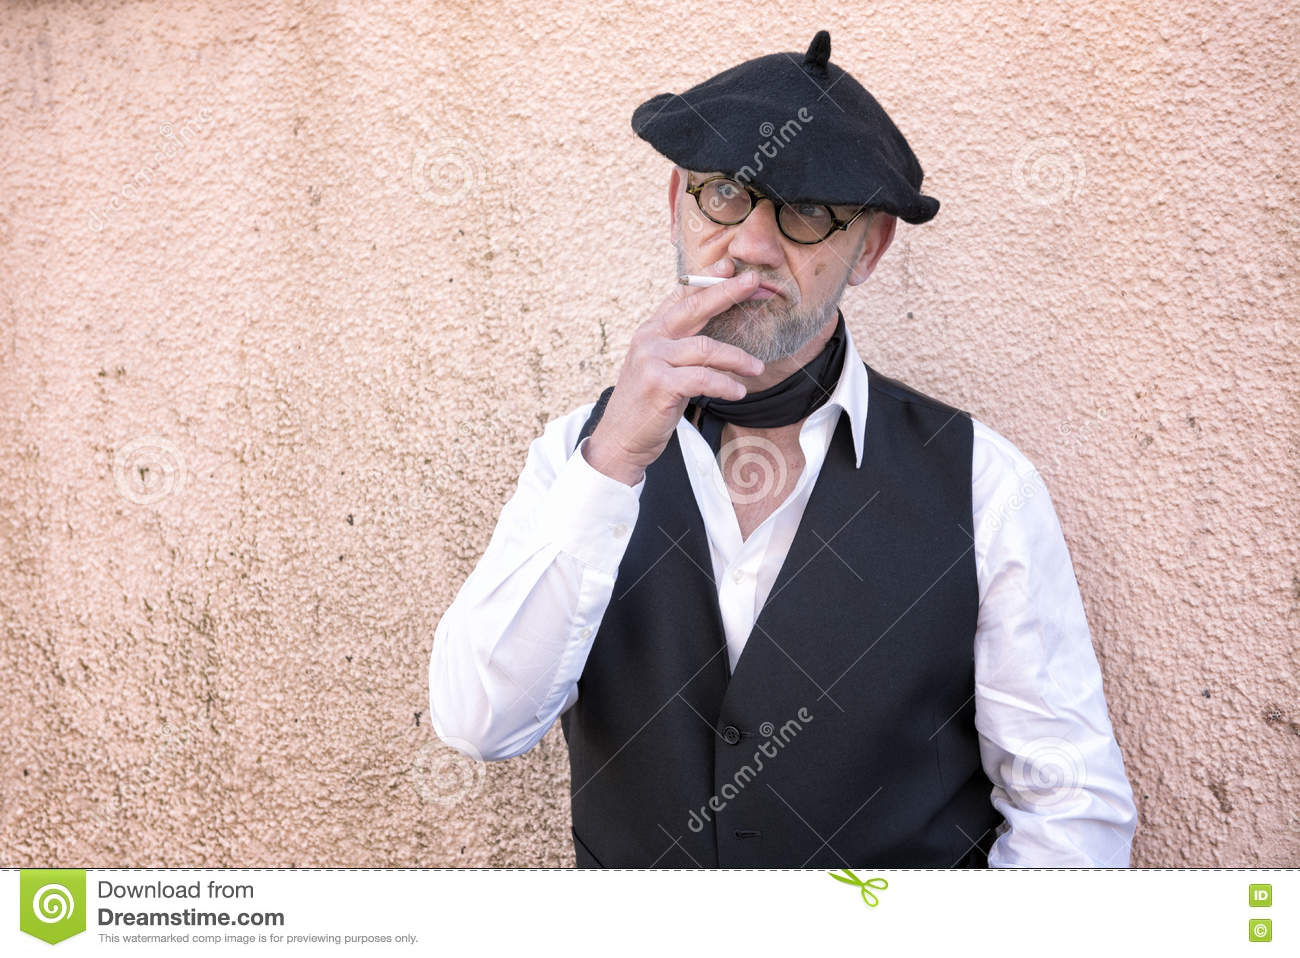 724c0c17ce36b Mature Man Wearing Traditional French Clothing Smoking A Cigarette ...